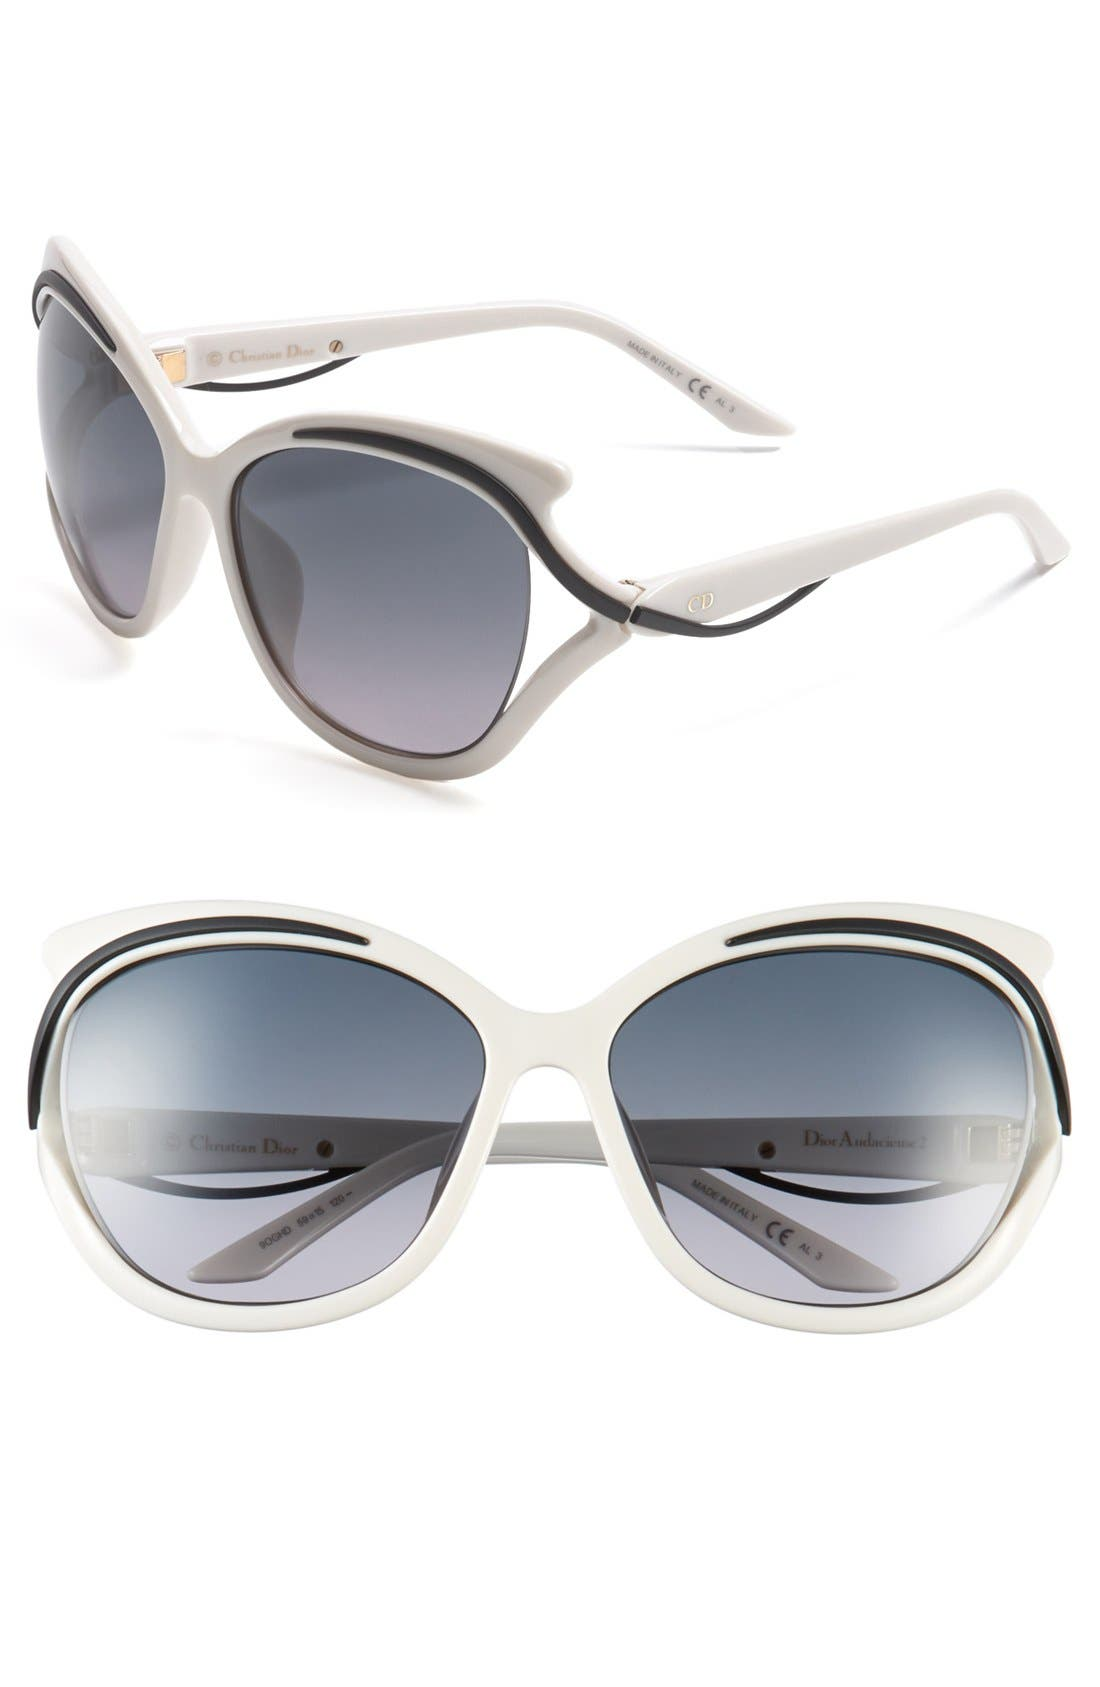 Alternate Image 1 Selected - Dior 'Audacieuse' 59mm Butterfly Sunglasses